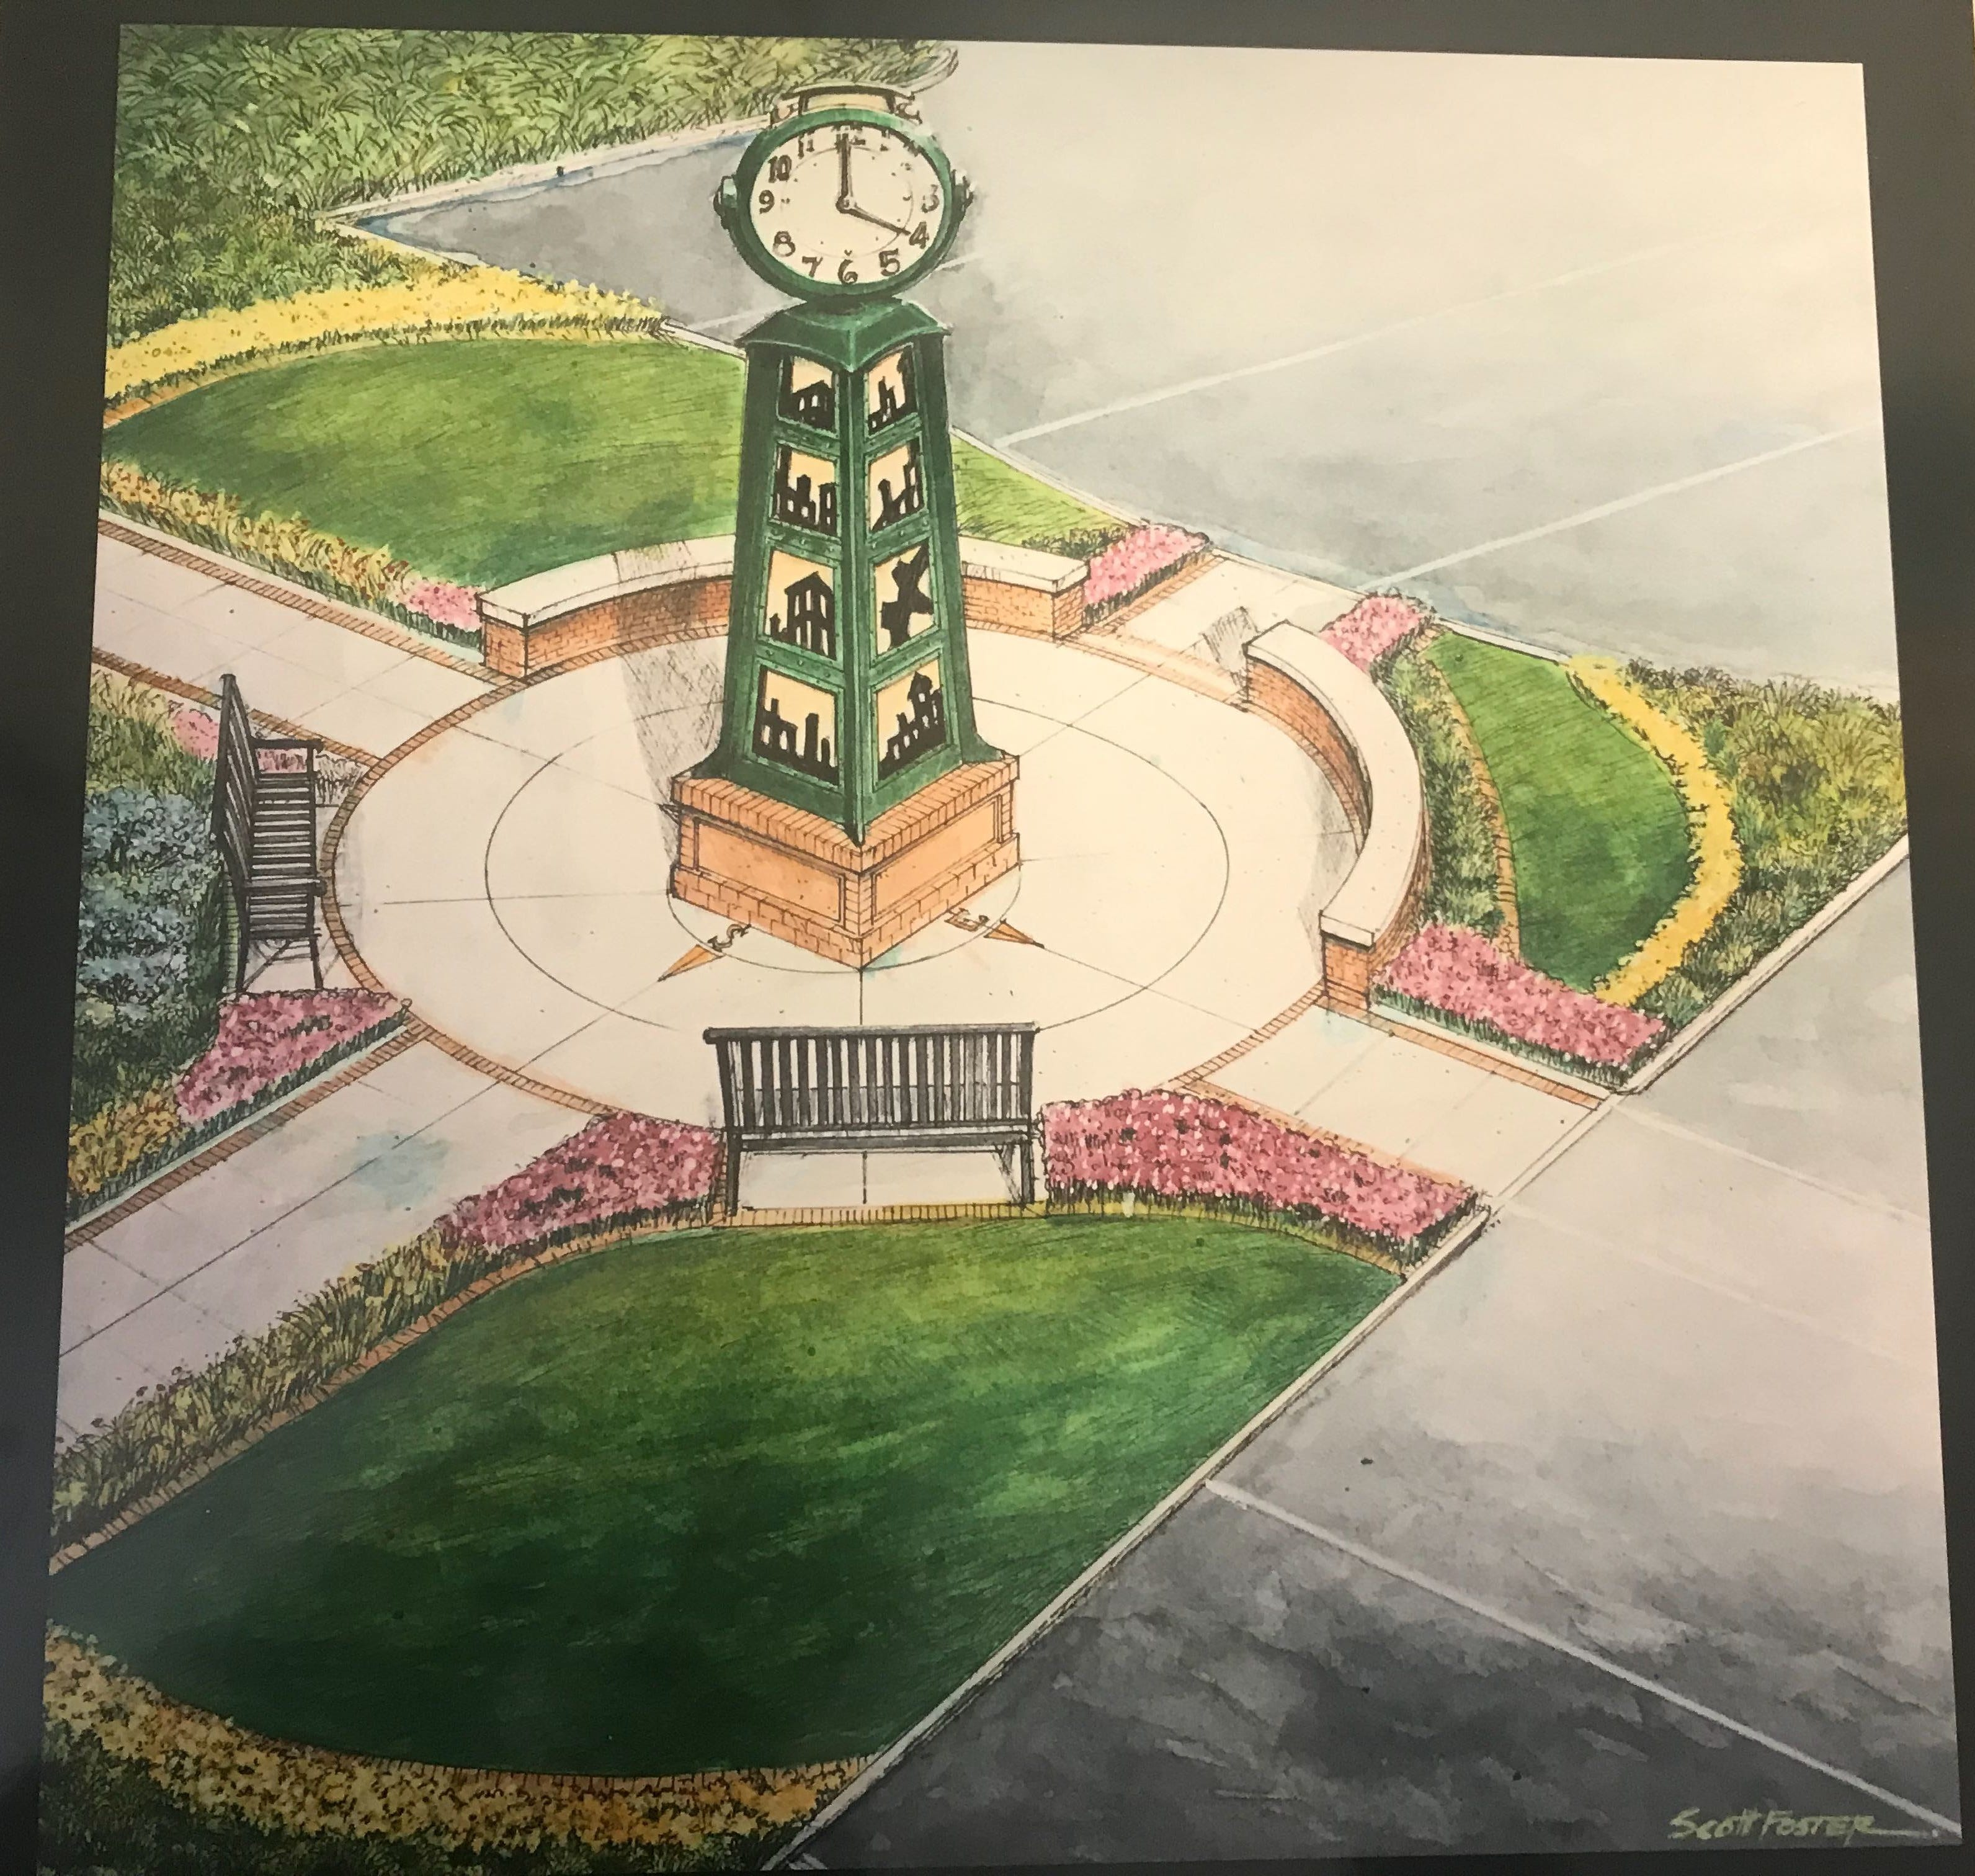 This is a rendering of what the pocket park near the Murray Avenue bridge will look like. The rendering and aspects of the park were designed by local artist Scott Foster.